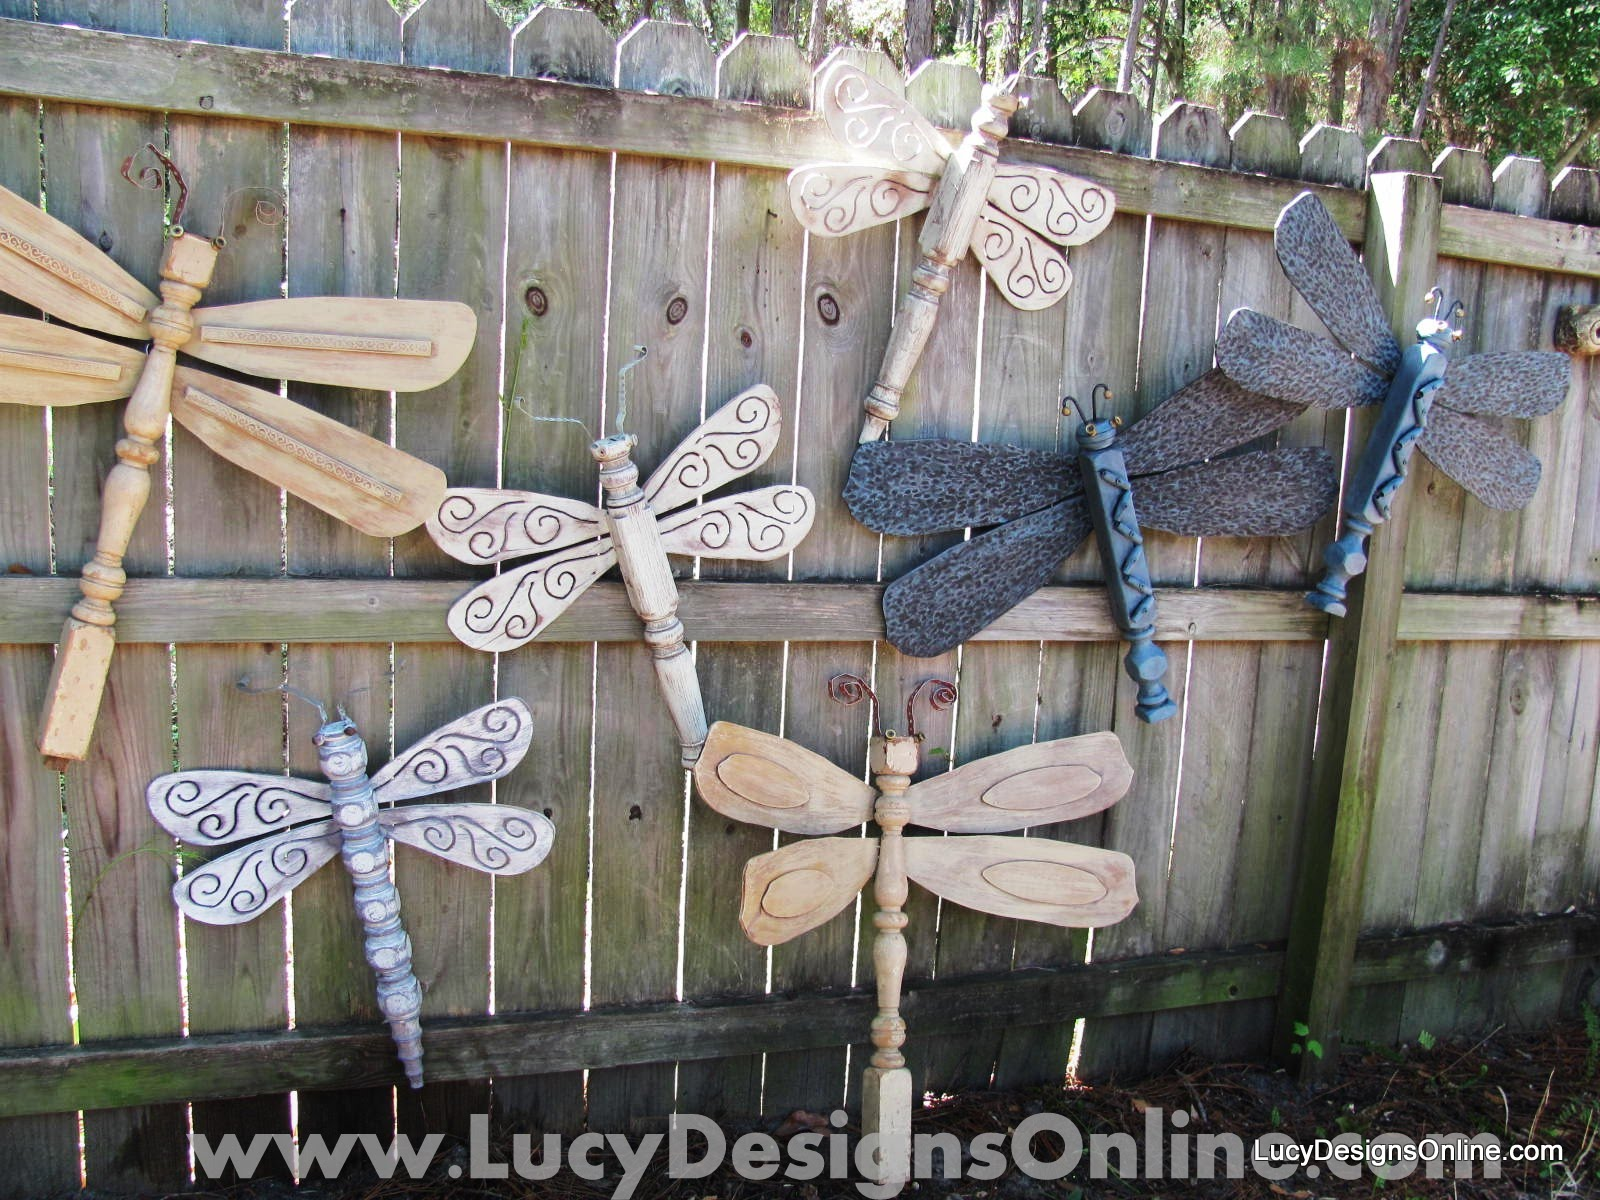 Outdoor decorating ideas 10 diy ideas for the holidays for Yard decorations ideas